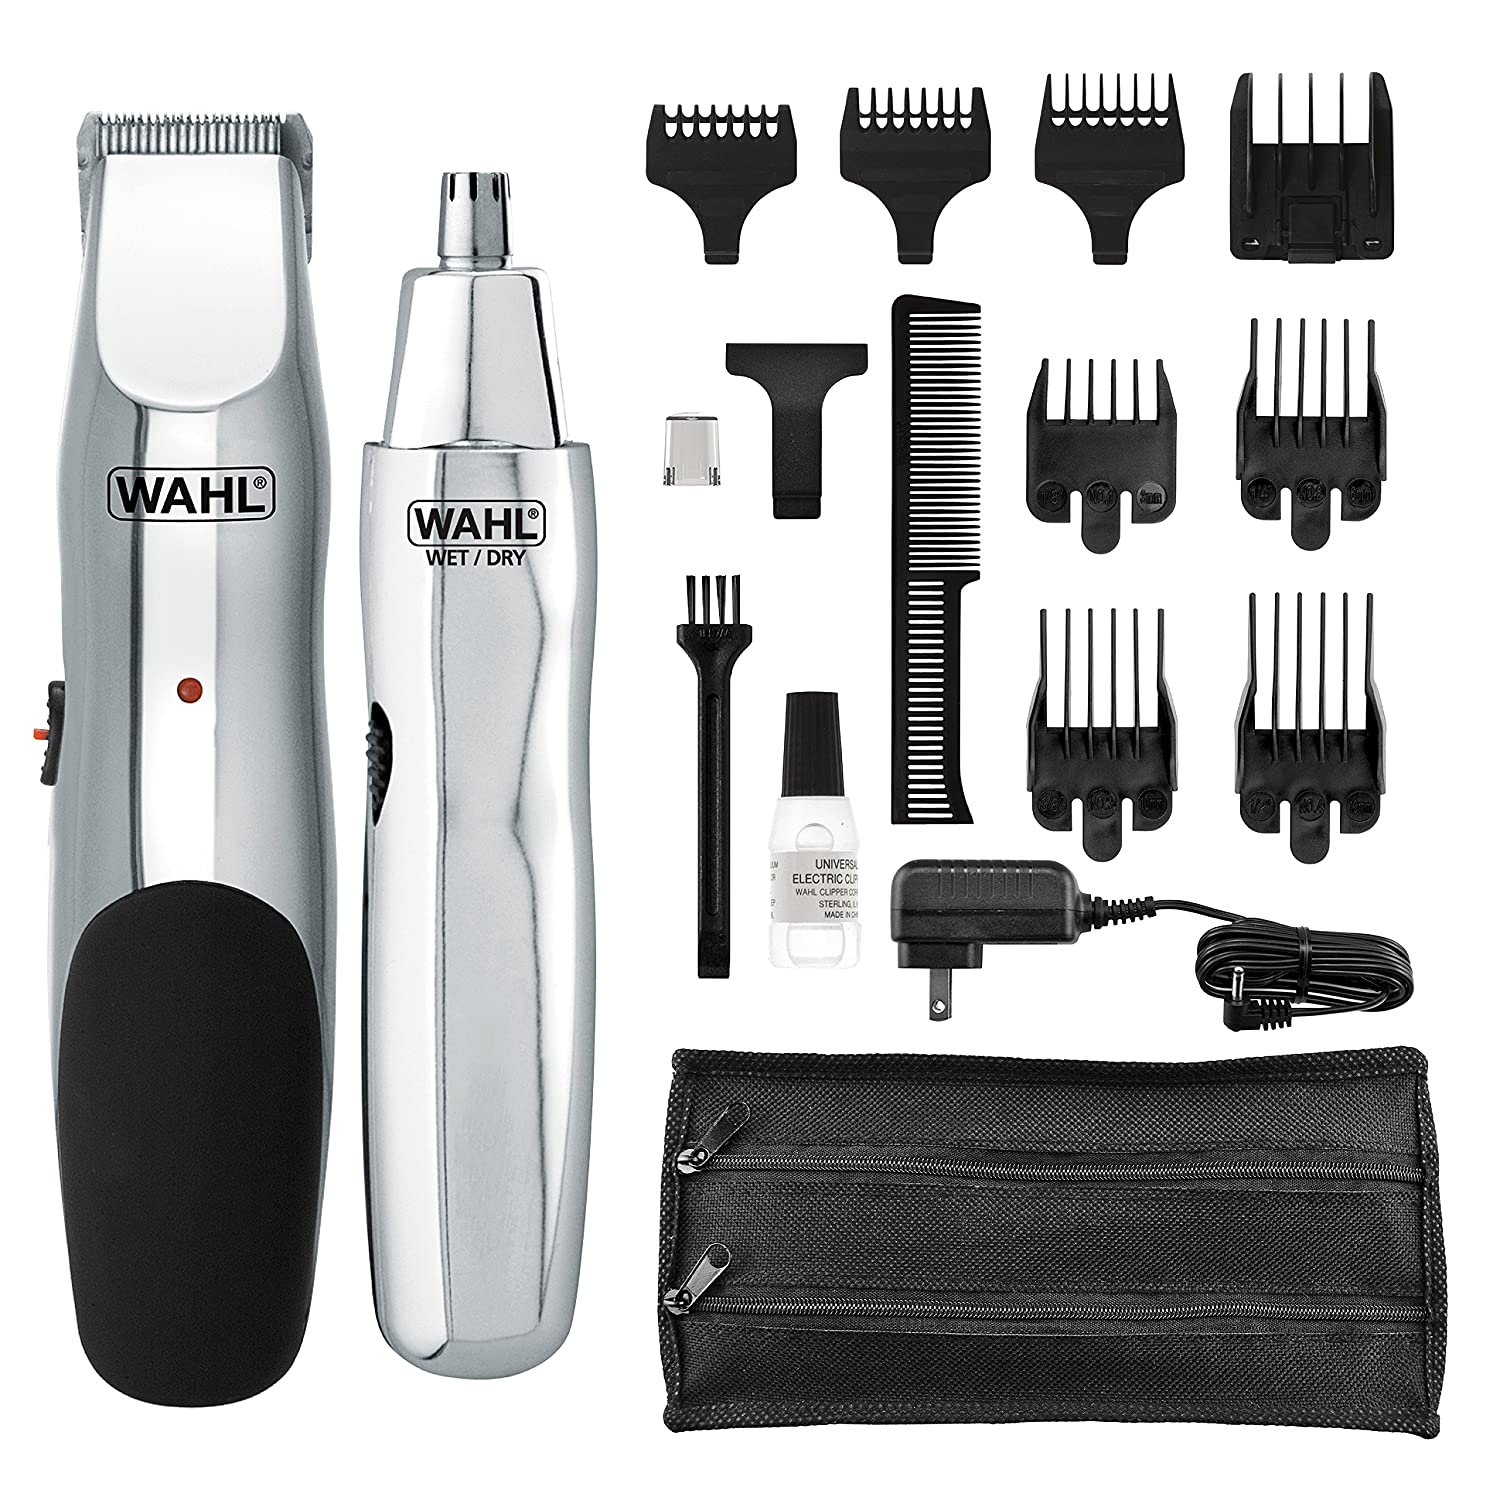 Wahl 5622 Groomsman Rechargeable Beard Trimmer